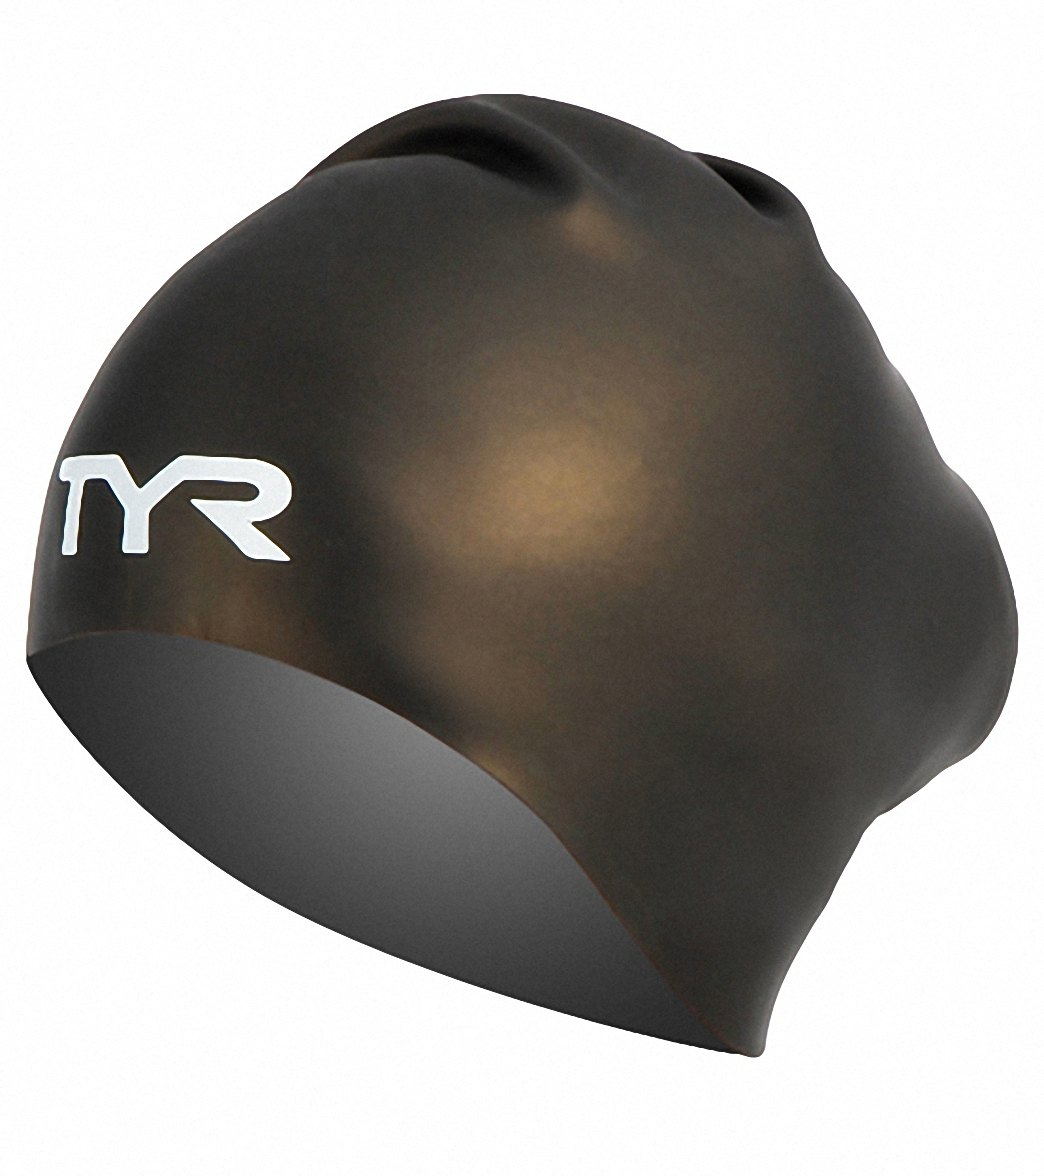 Black Tyr Wrinkle Free Silicone Cap